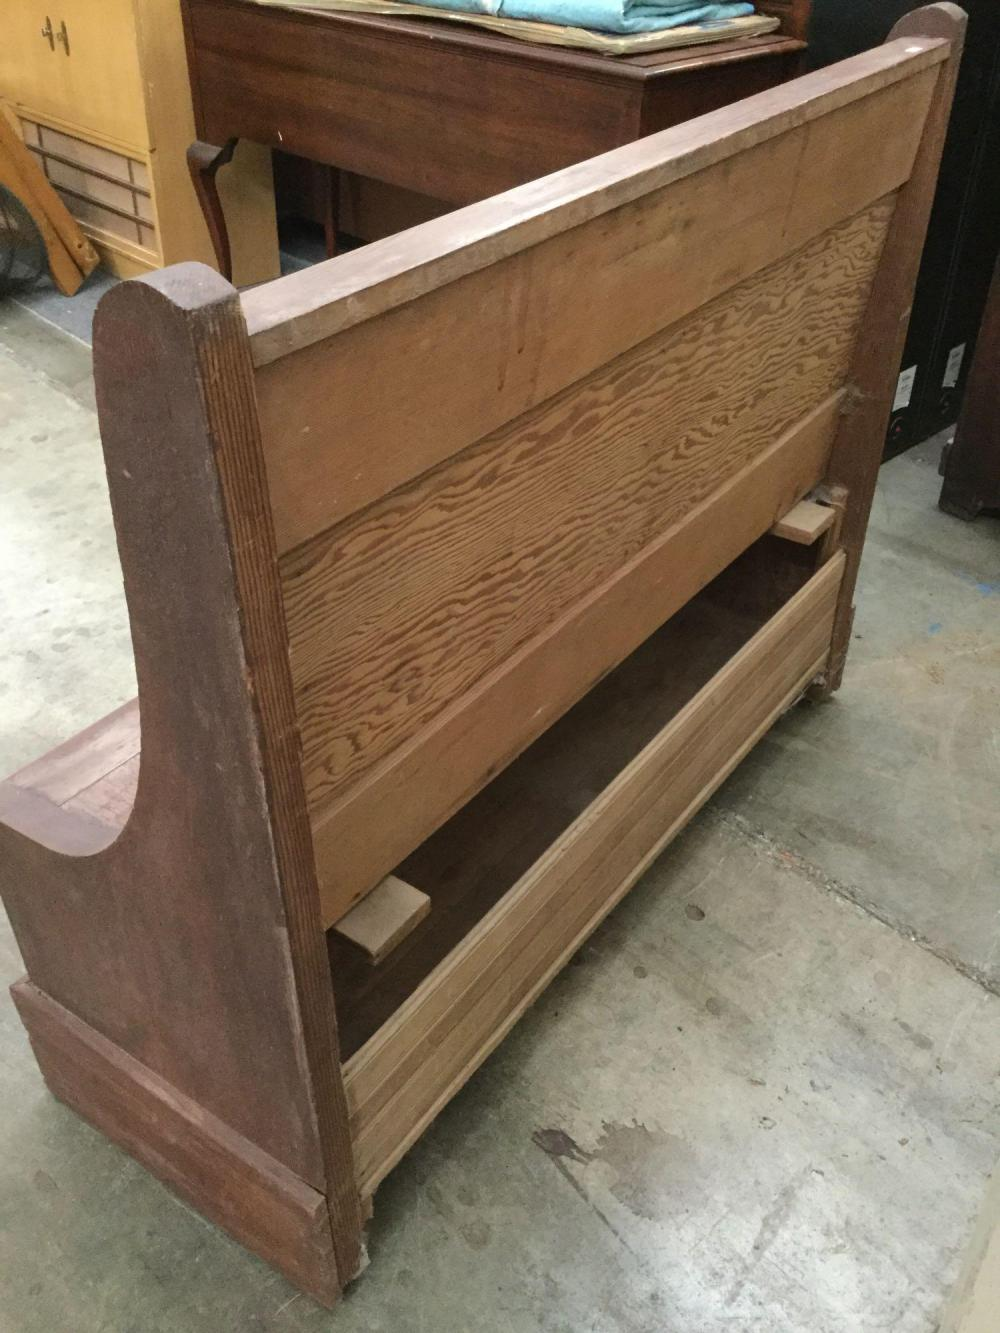 Remarkable Antique Church Style Wooden Pew Bench With Storage Seat Cjindustries Chair Design For Home Cjindustriesco